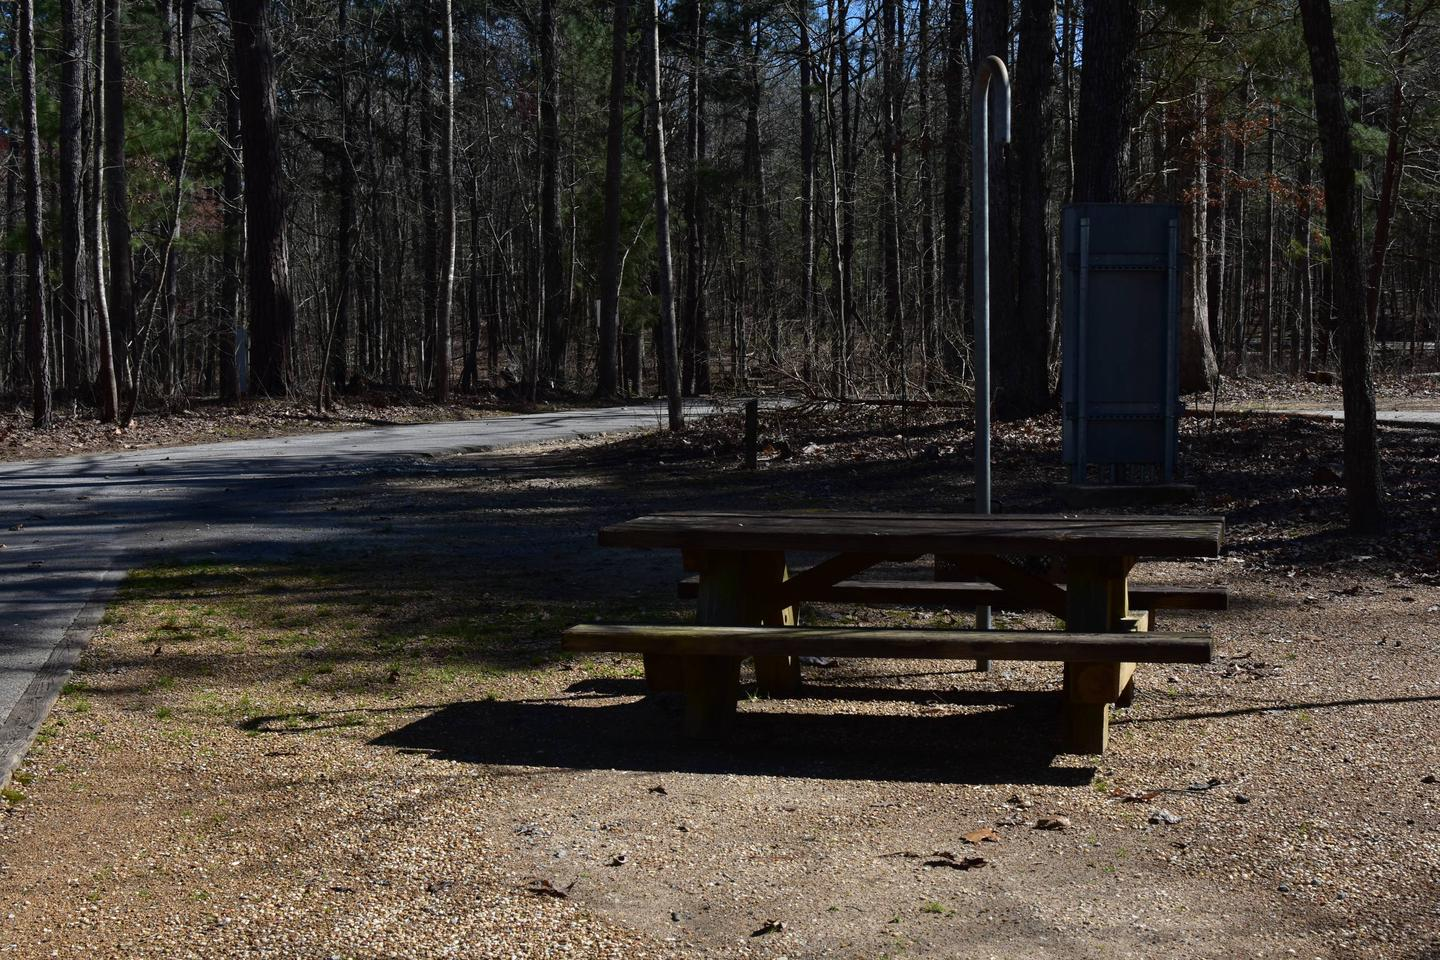 Hoot Owl Site 59-5Hoot Owl Site 59, March 6, 2020